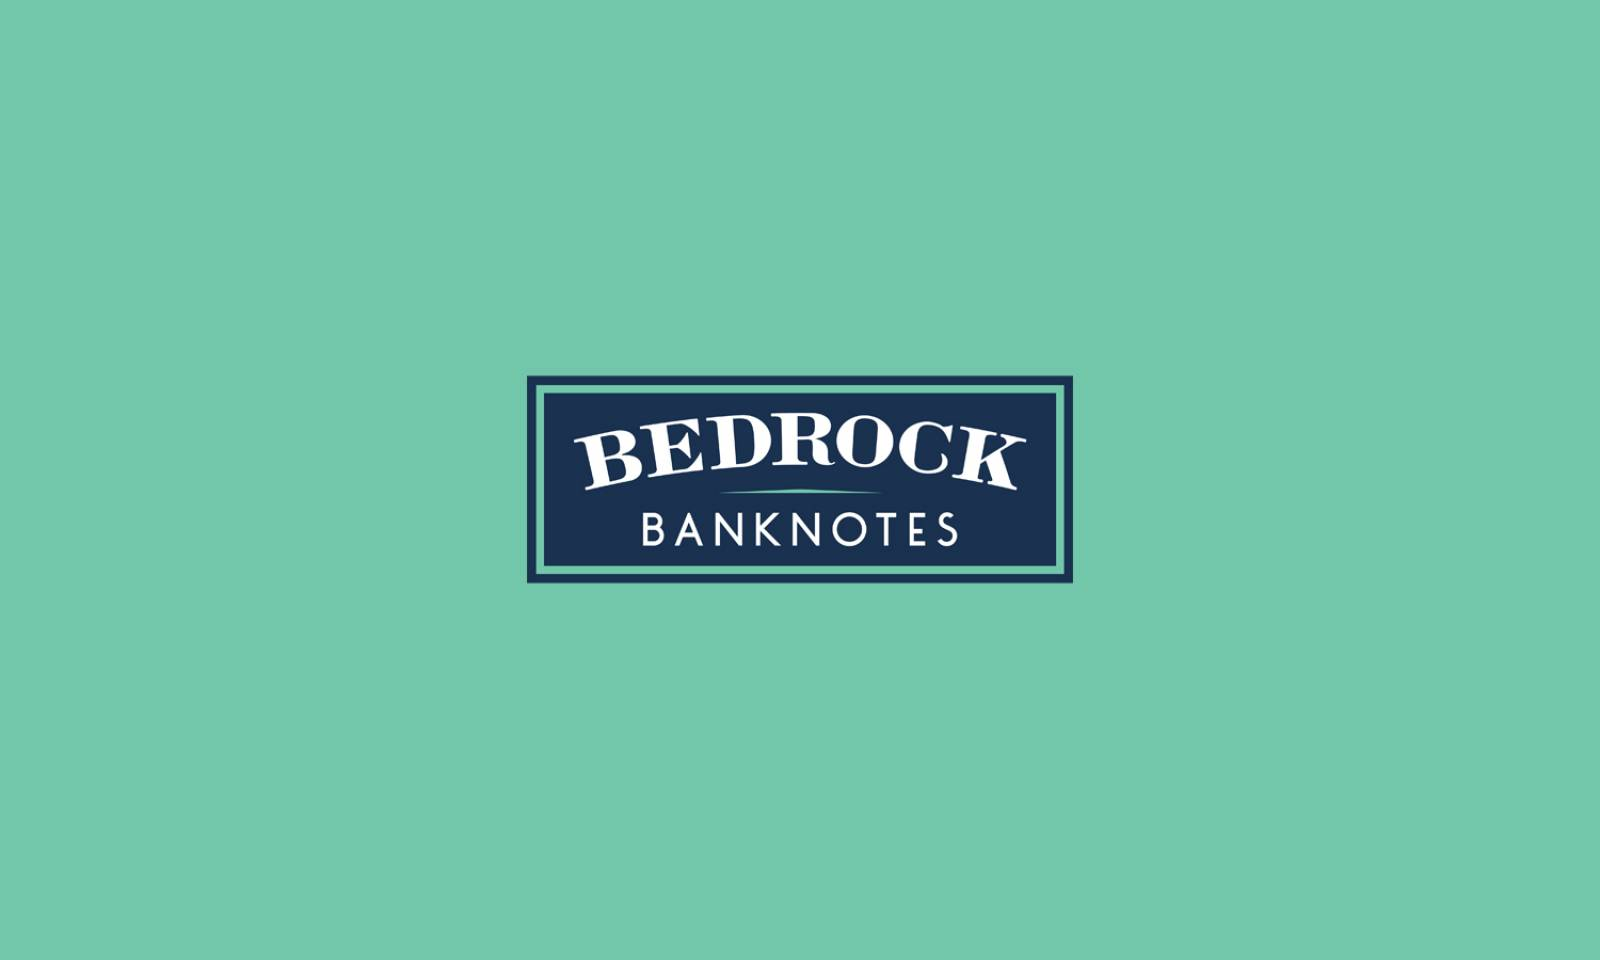 logo-Bedrock-corporate-identity-agency-graphic-design-canterbury.jpg